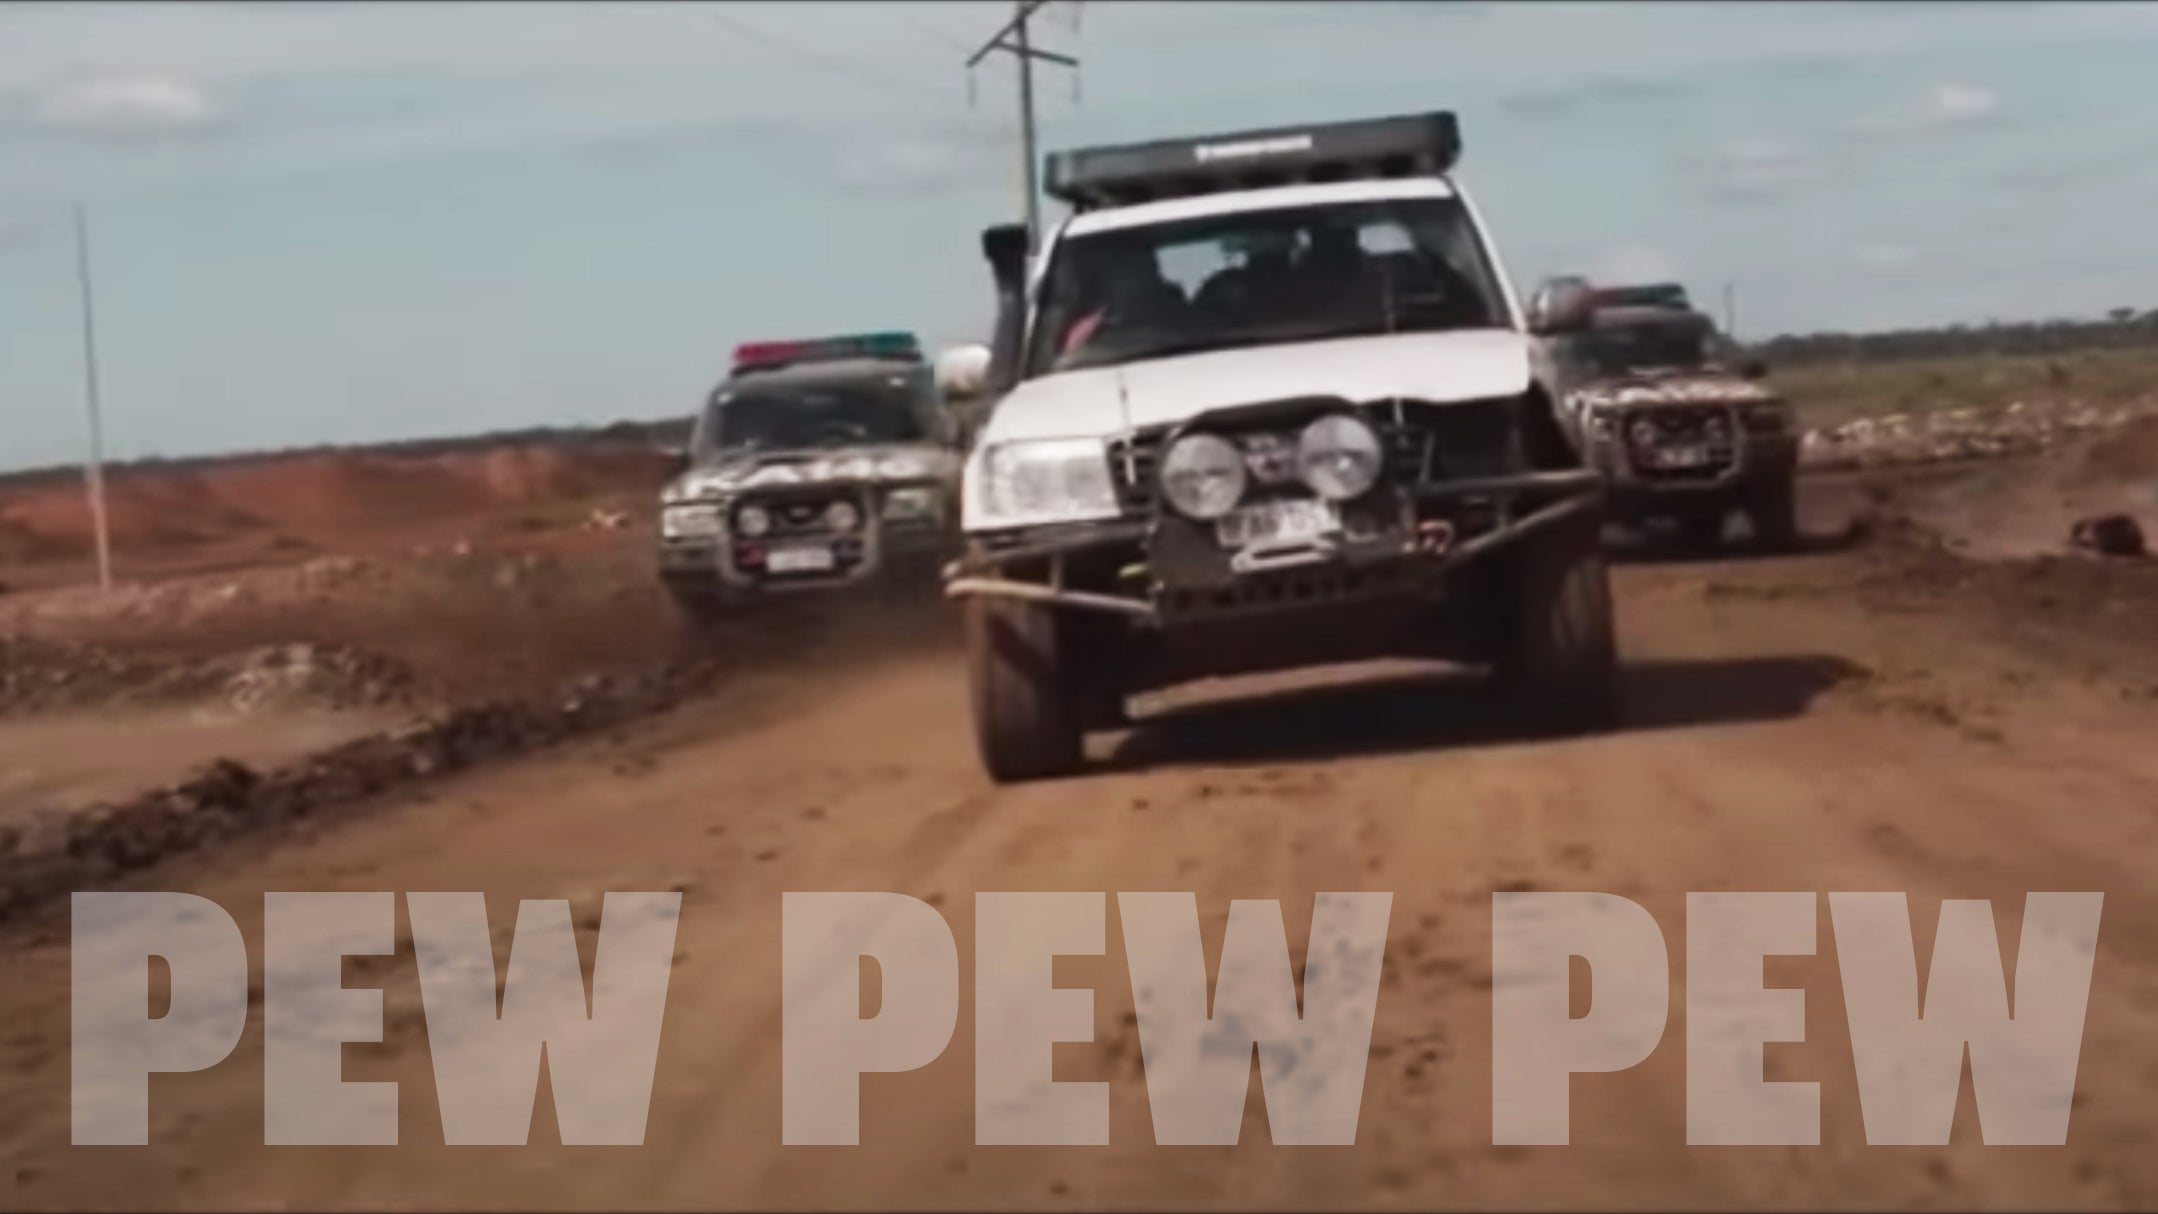 The Car Chase In Son Of A Gun Has Land Cruiser Drifting And Violence